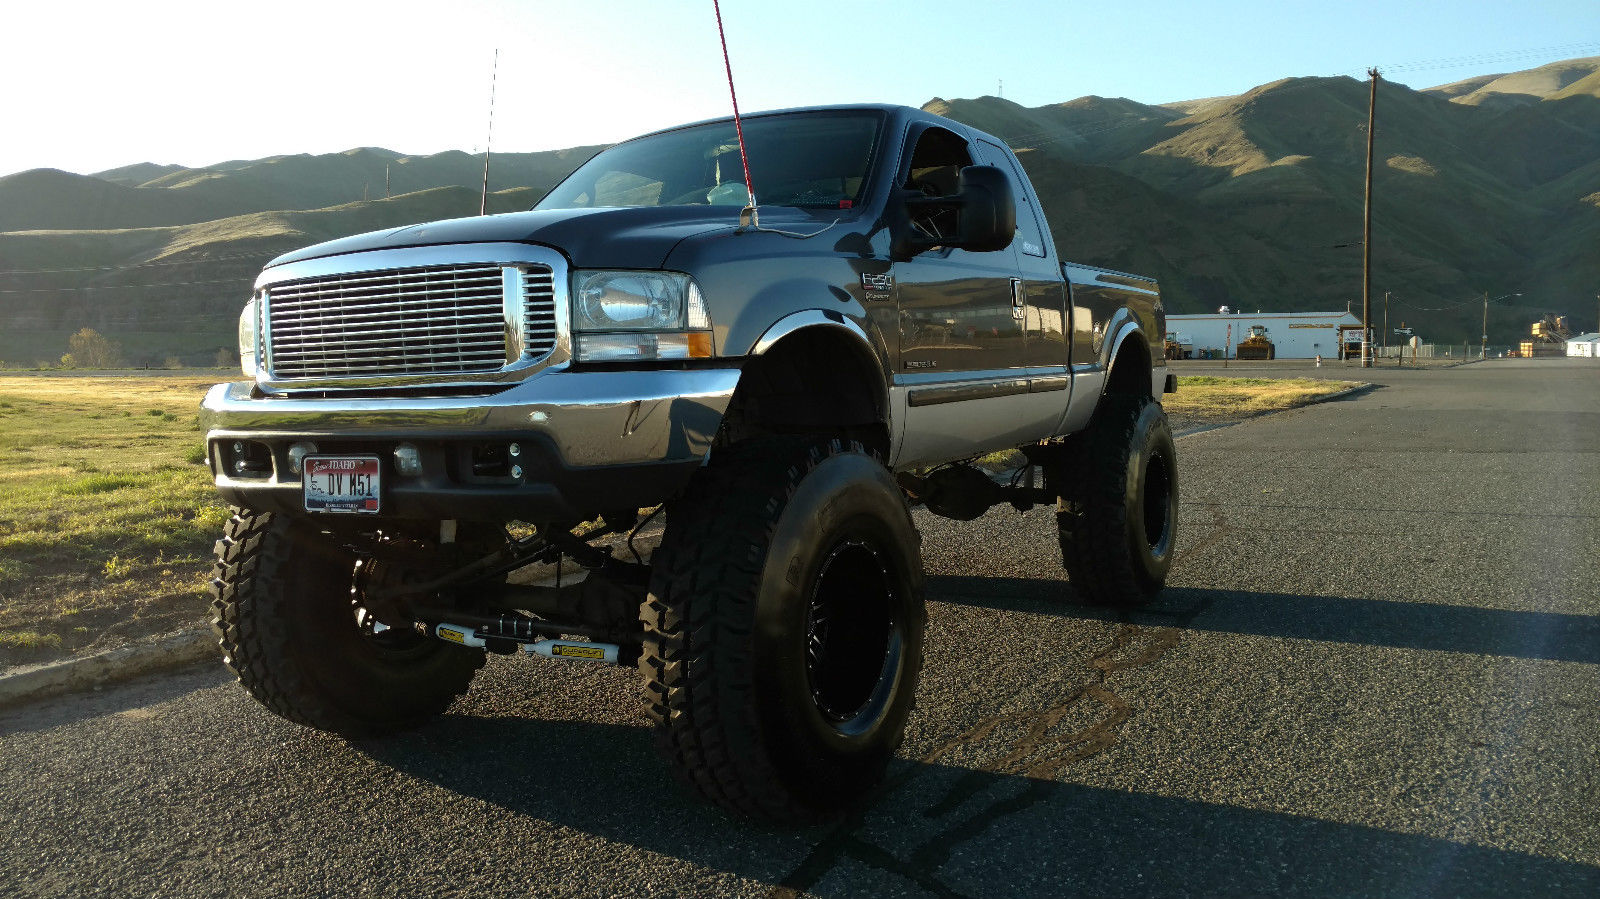 2002 ford f250 superduty lifted 7 3l diesel monster mudder for sale